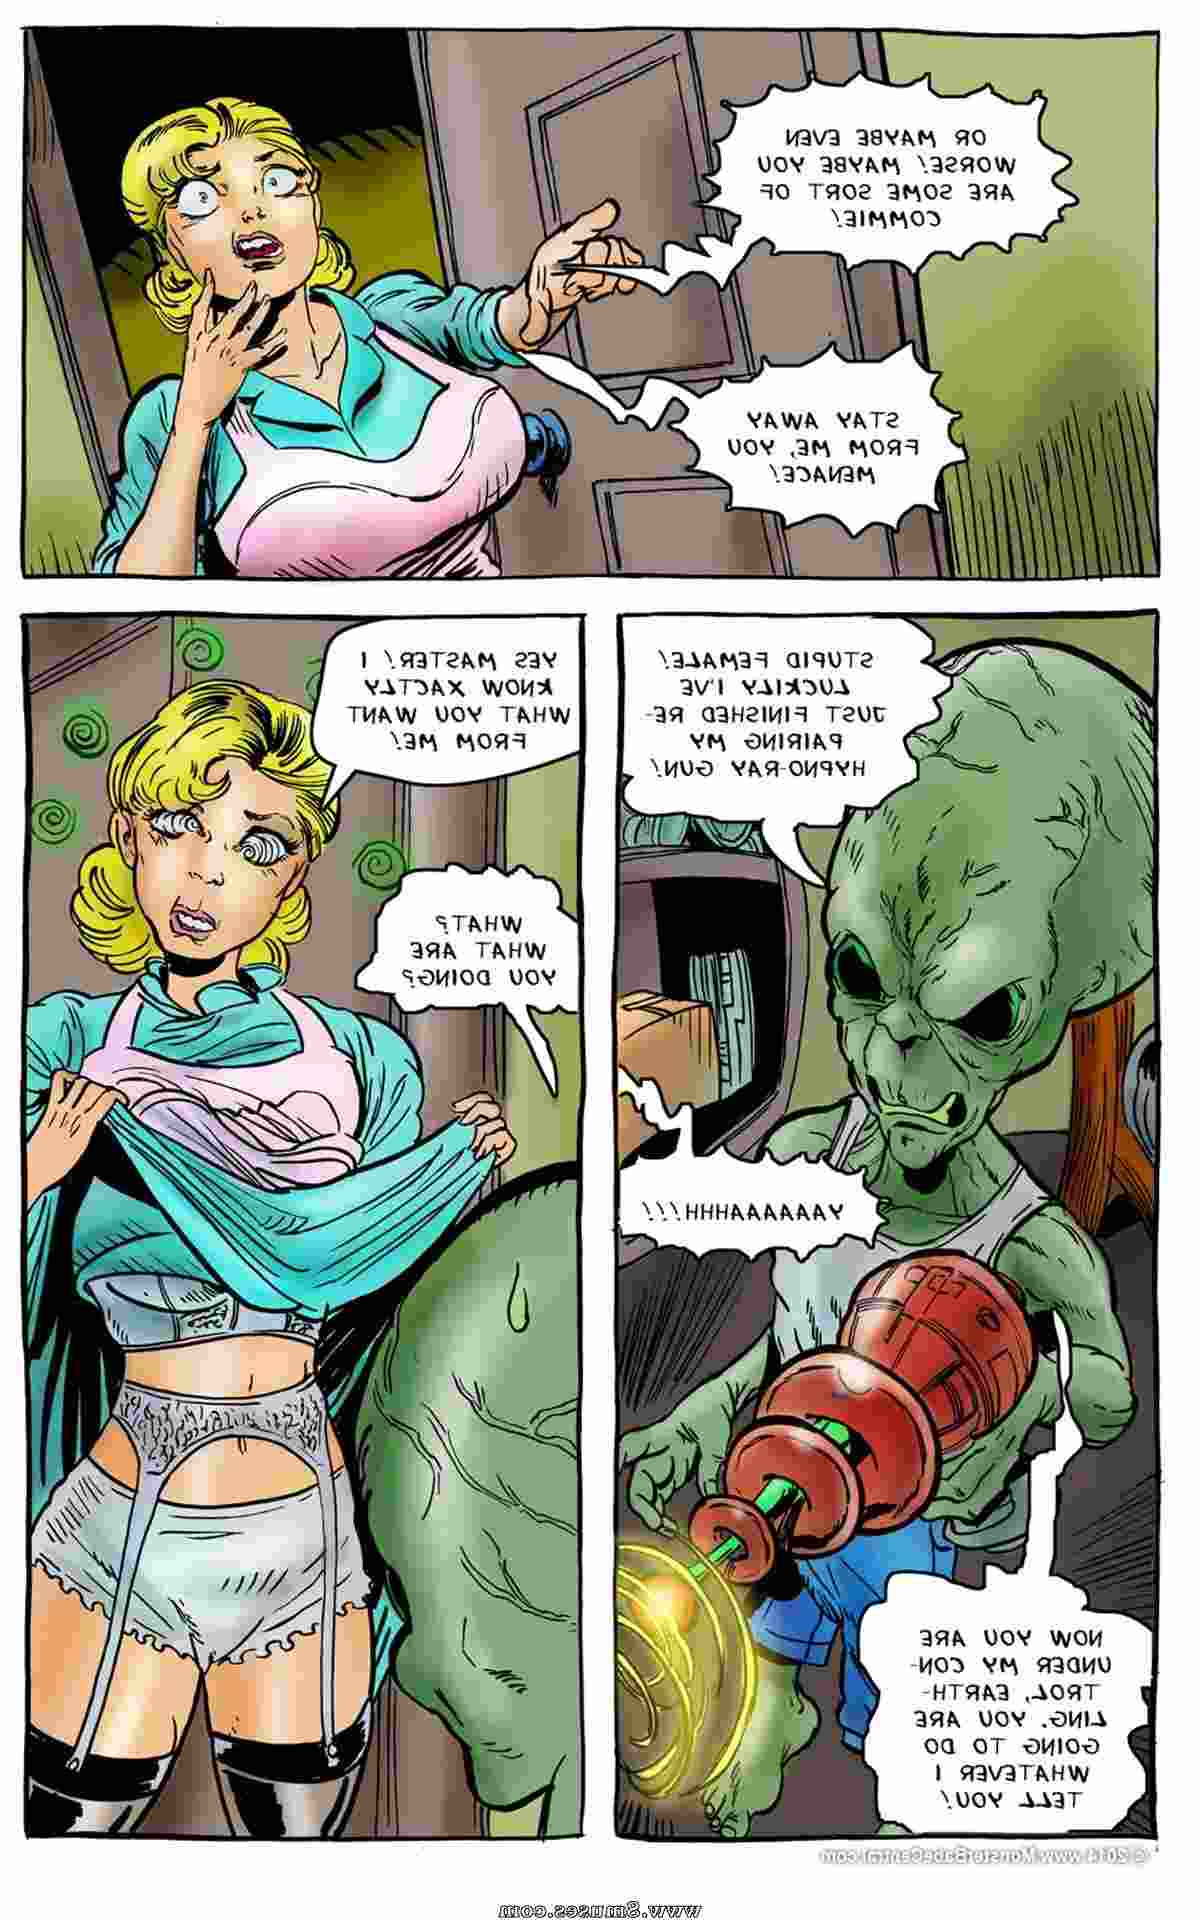 Central-Comics/Monster-Babe-Central/Monster-Channel Monster_Channel__8muses_-_Sex_and_Porn_Comics_161.jpg